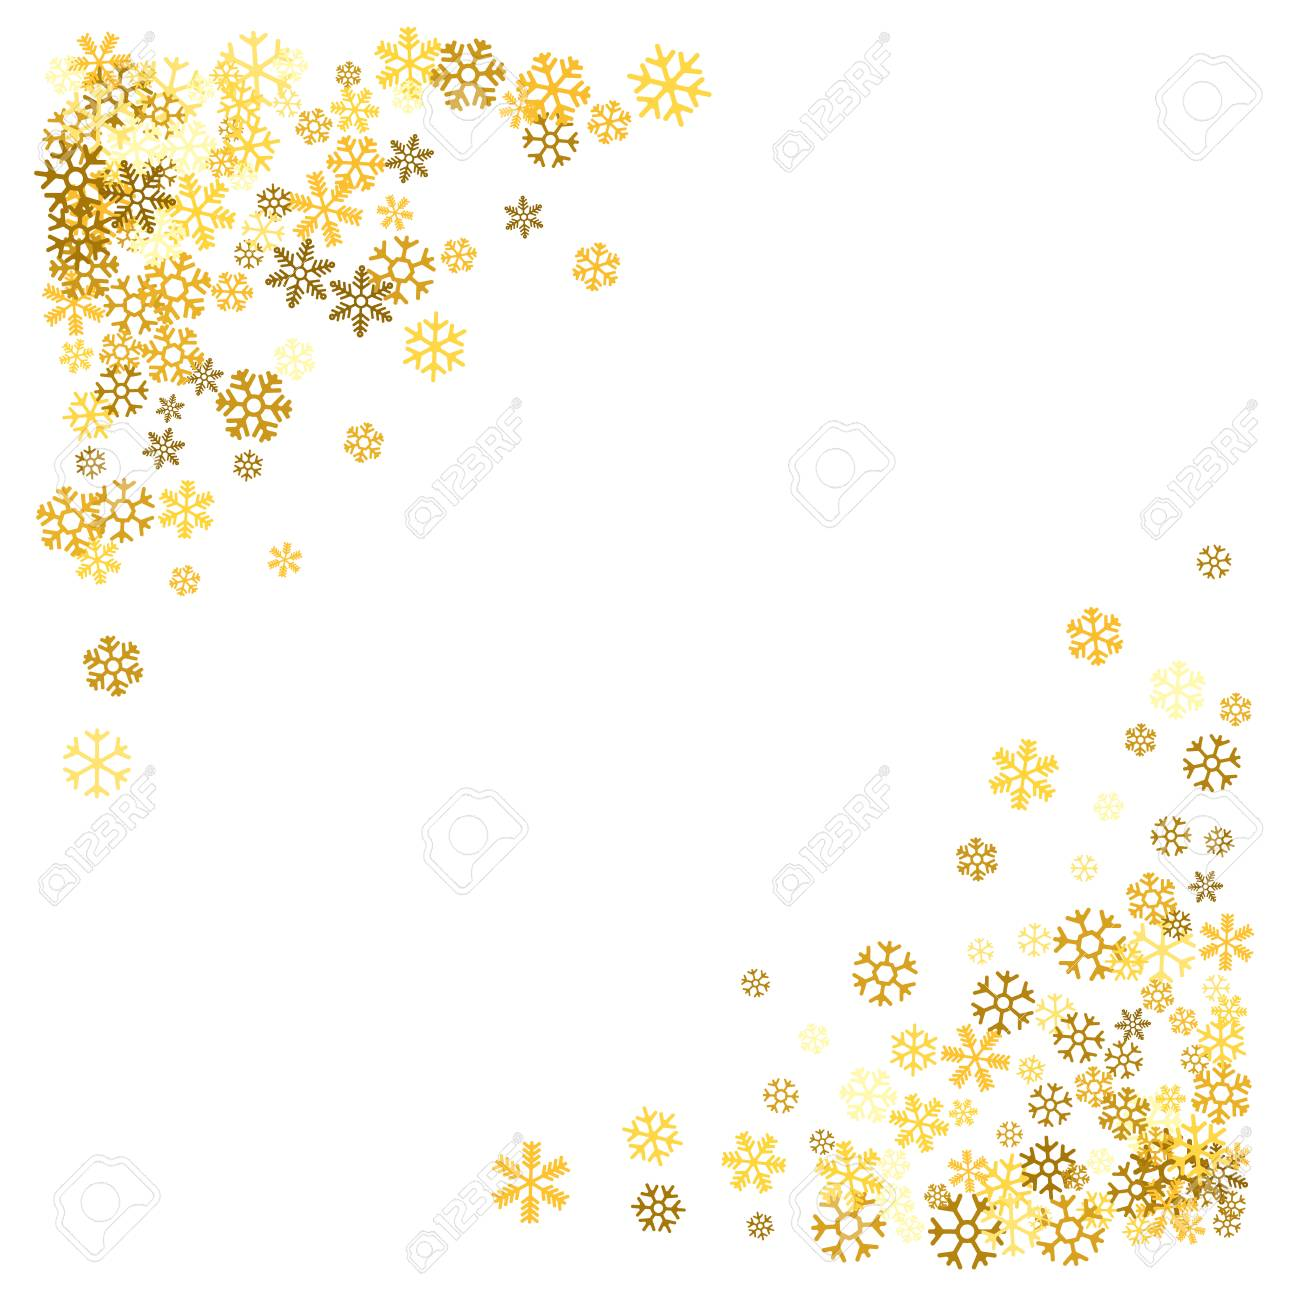 44e2f6b7adee Triangle corner gold frame or border of scatter golden snowflakes on white  background. Design element